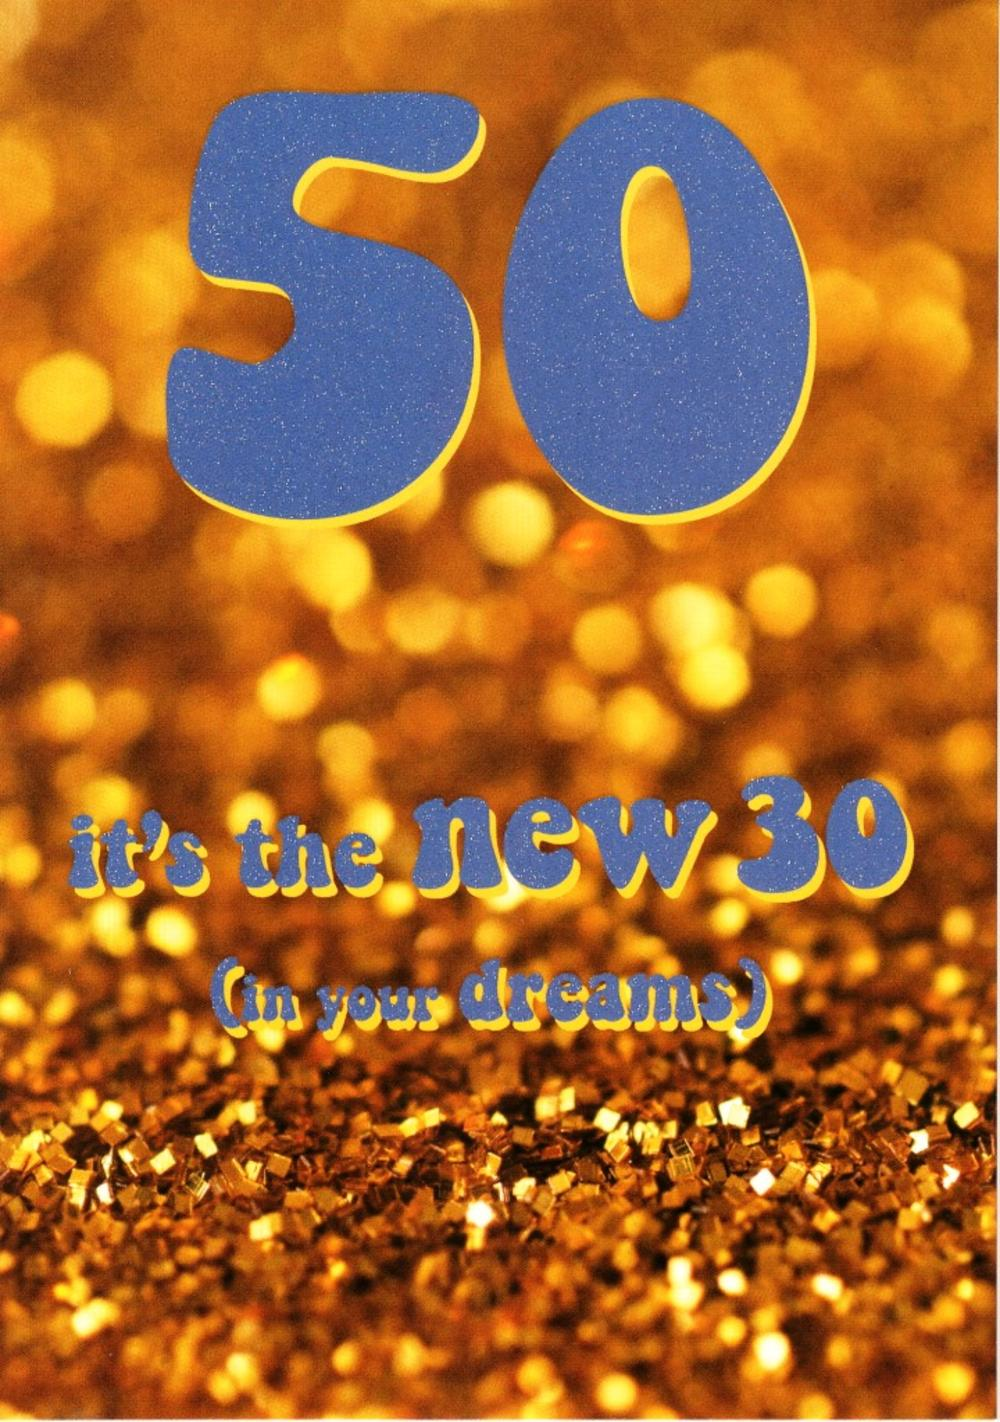 50 The New 30 In Your Dreams 50th Birthday Card